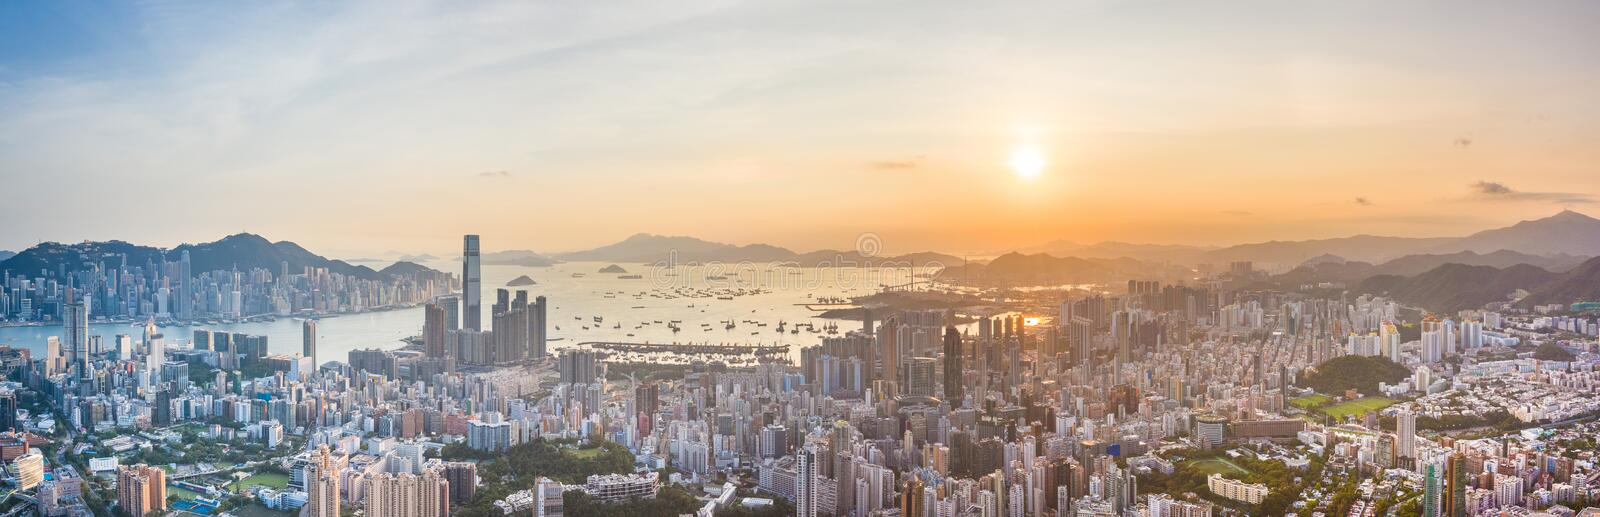 Sunset of Victoria Harbor, cityscape of Hong Kong. Asia royalty free stock photography